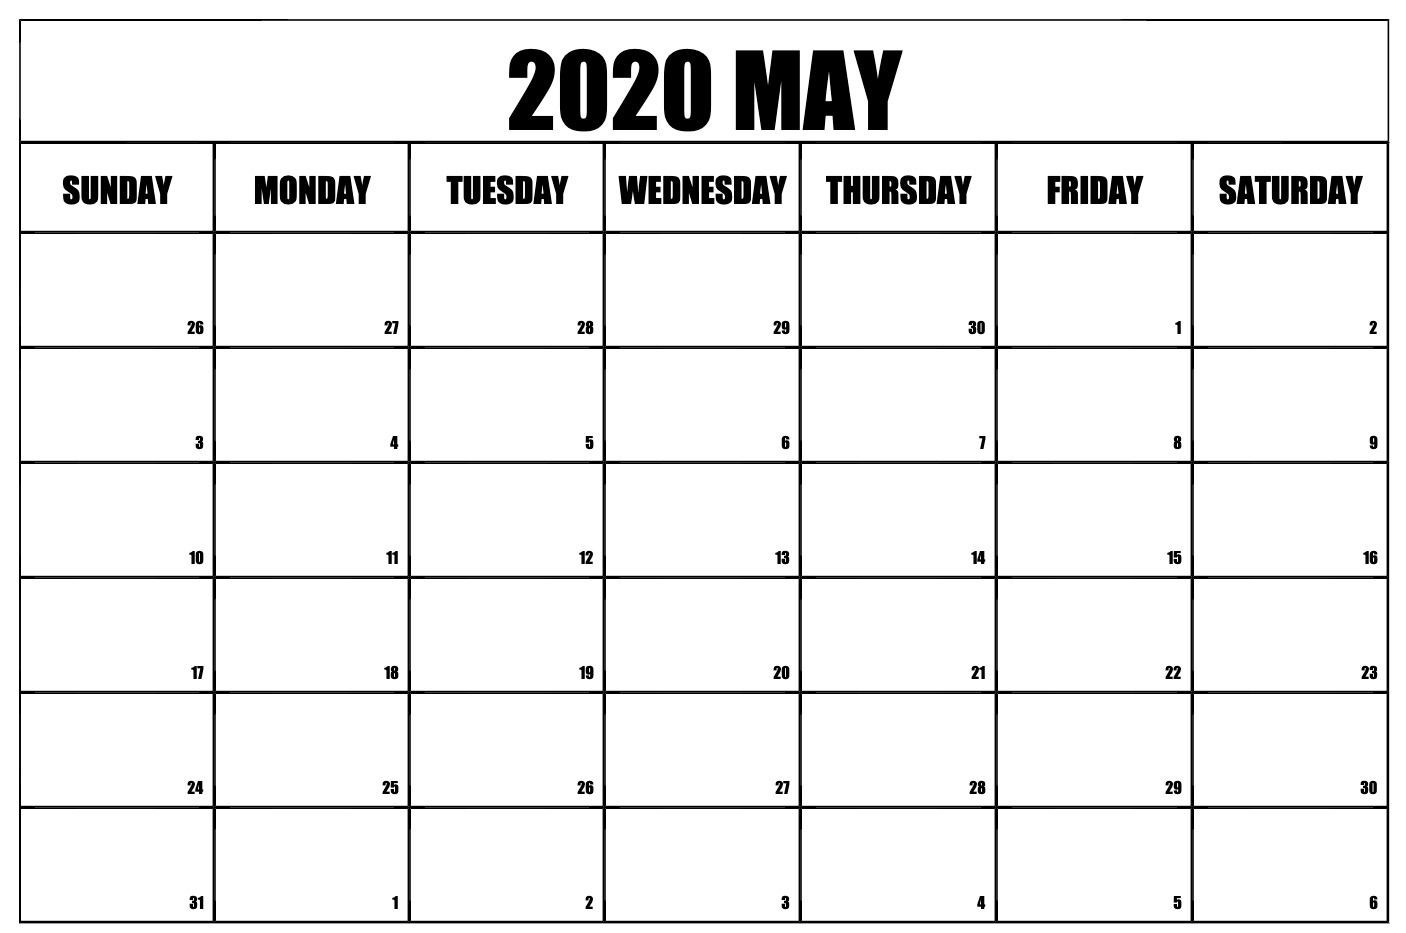 May 2020 Calendar Pdf, Word, Excel Printable Template-Fre Printable Blank Calander Monthly Pages